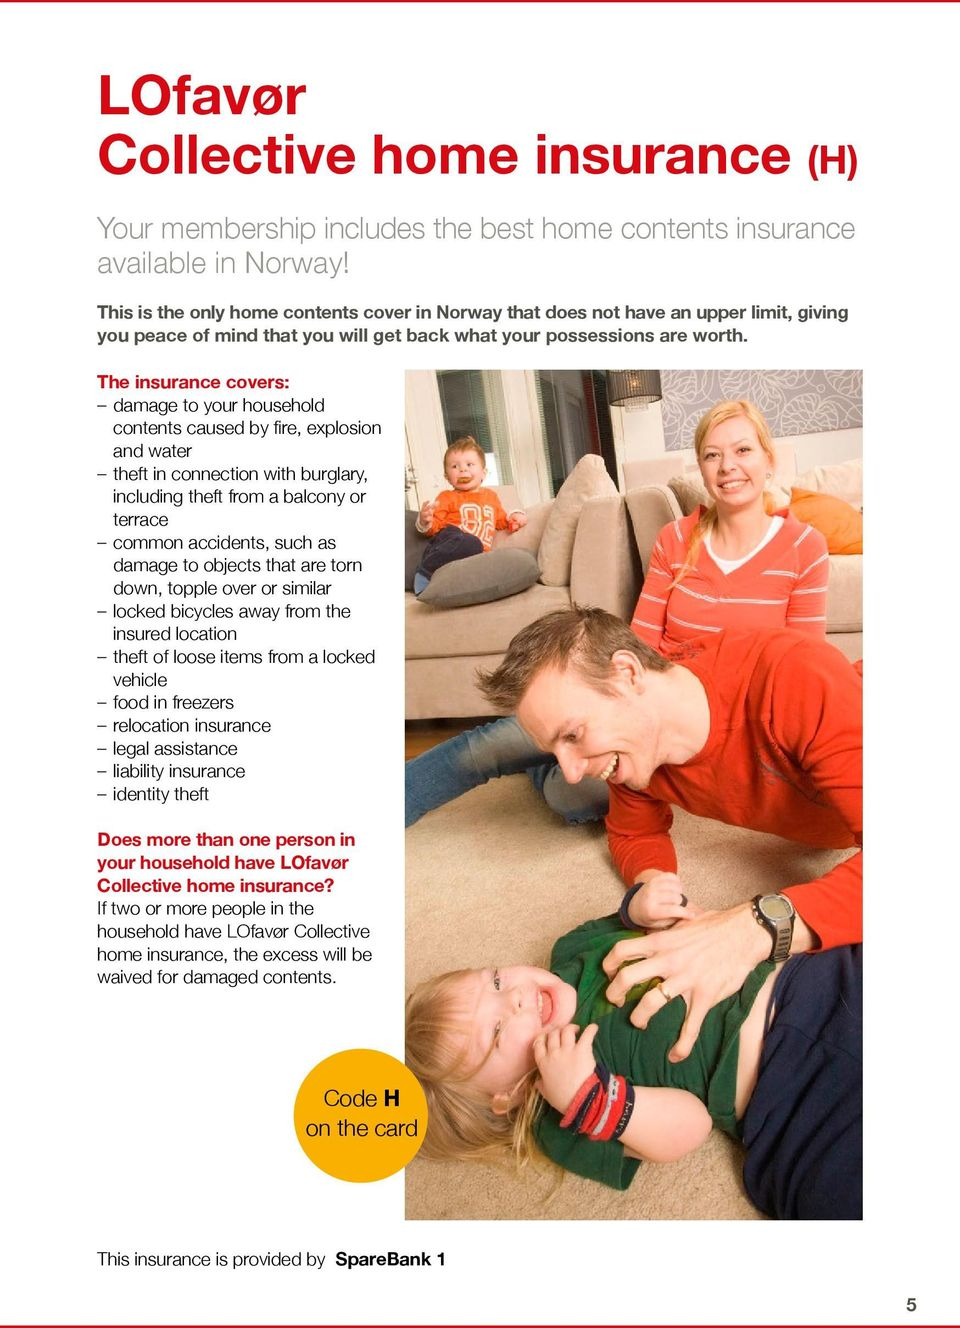 The insurance covers: damage to your household contents caused by fire, explosion and water theft in connection with burglary, including theft from a balcony or terrace common accidents, such as